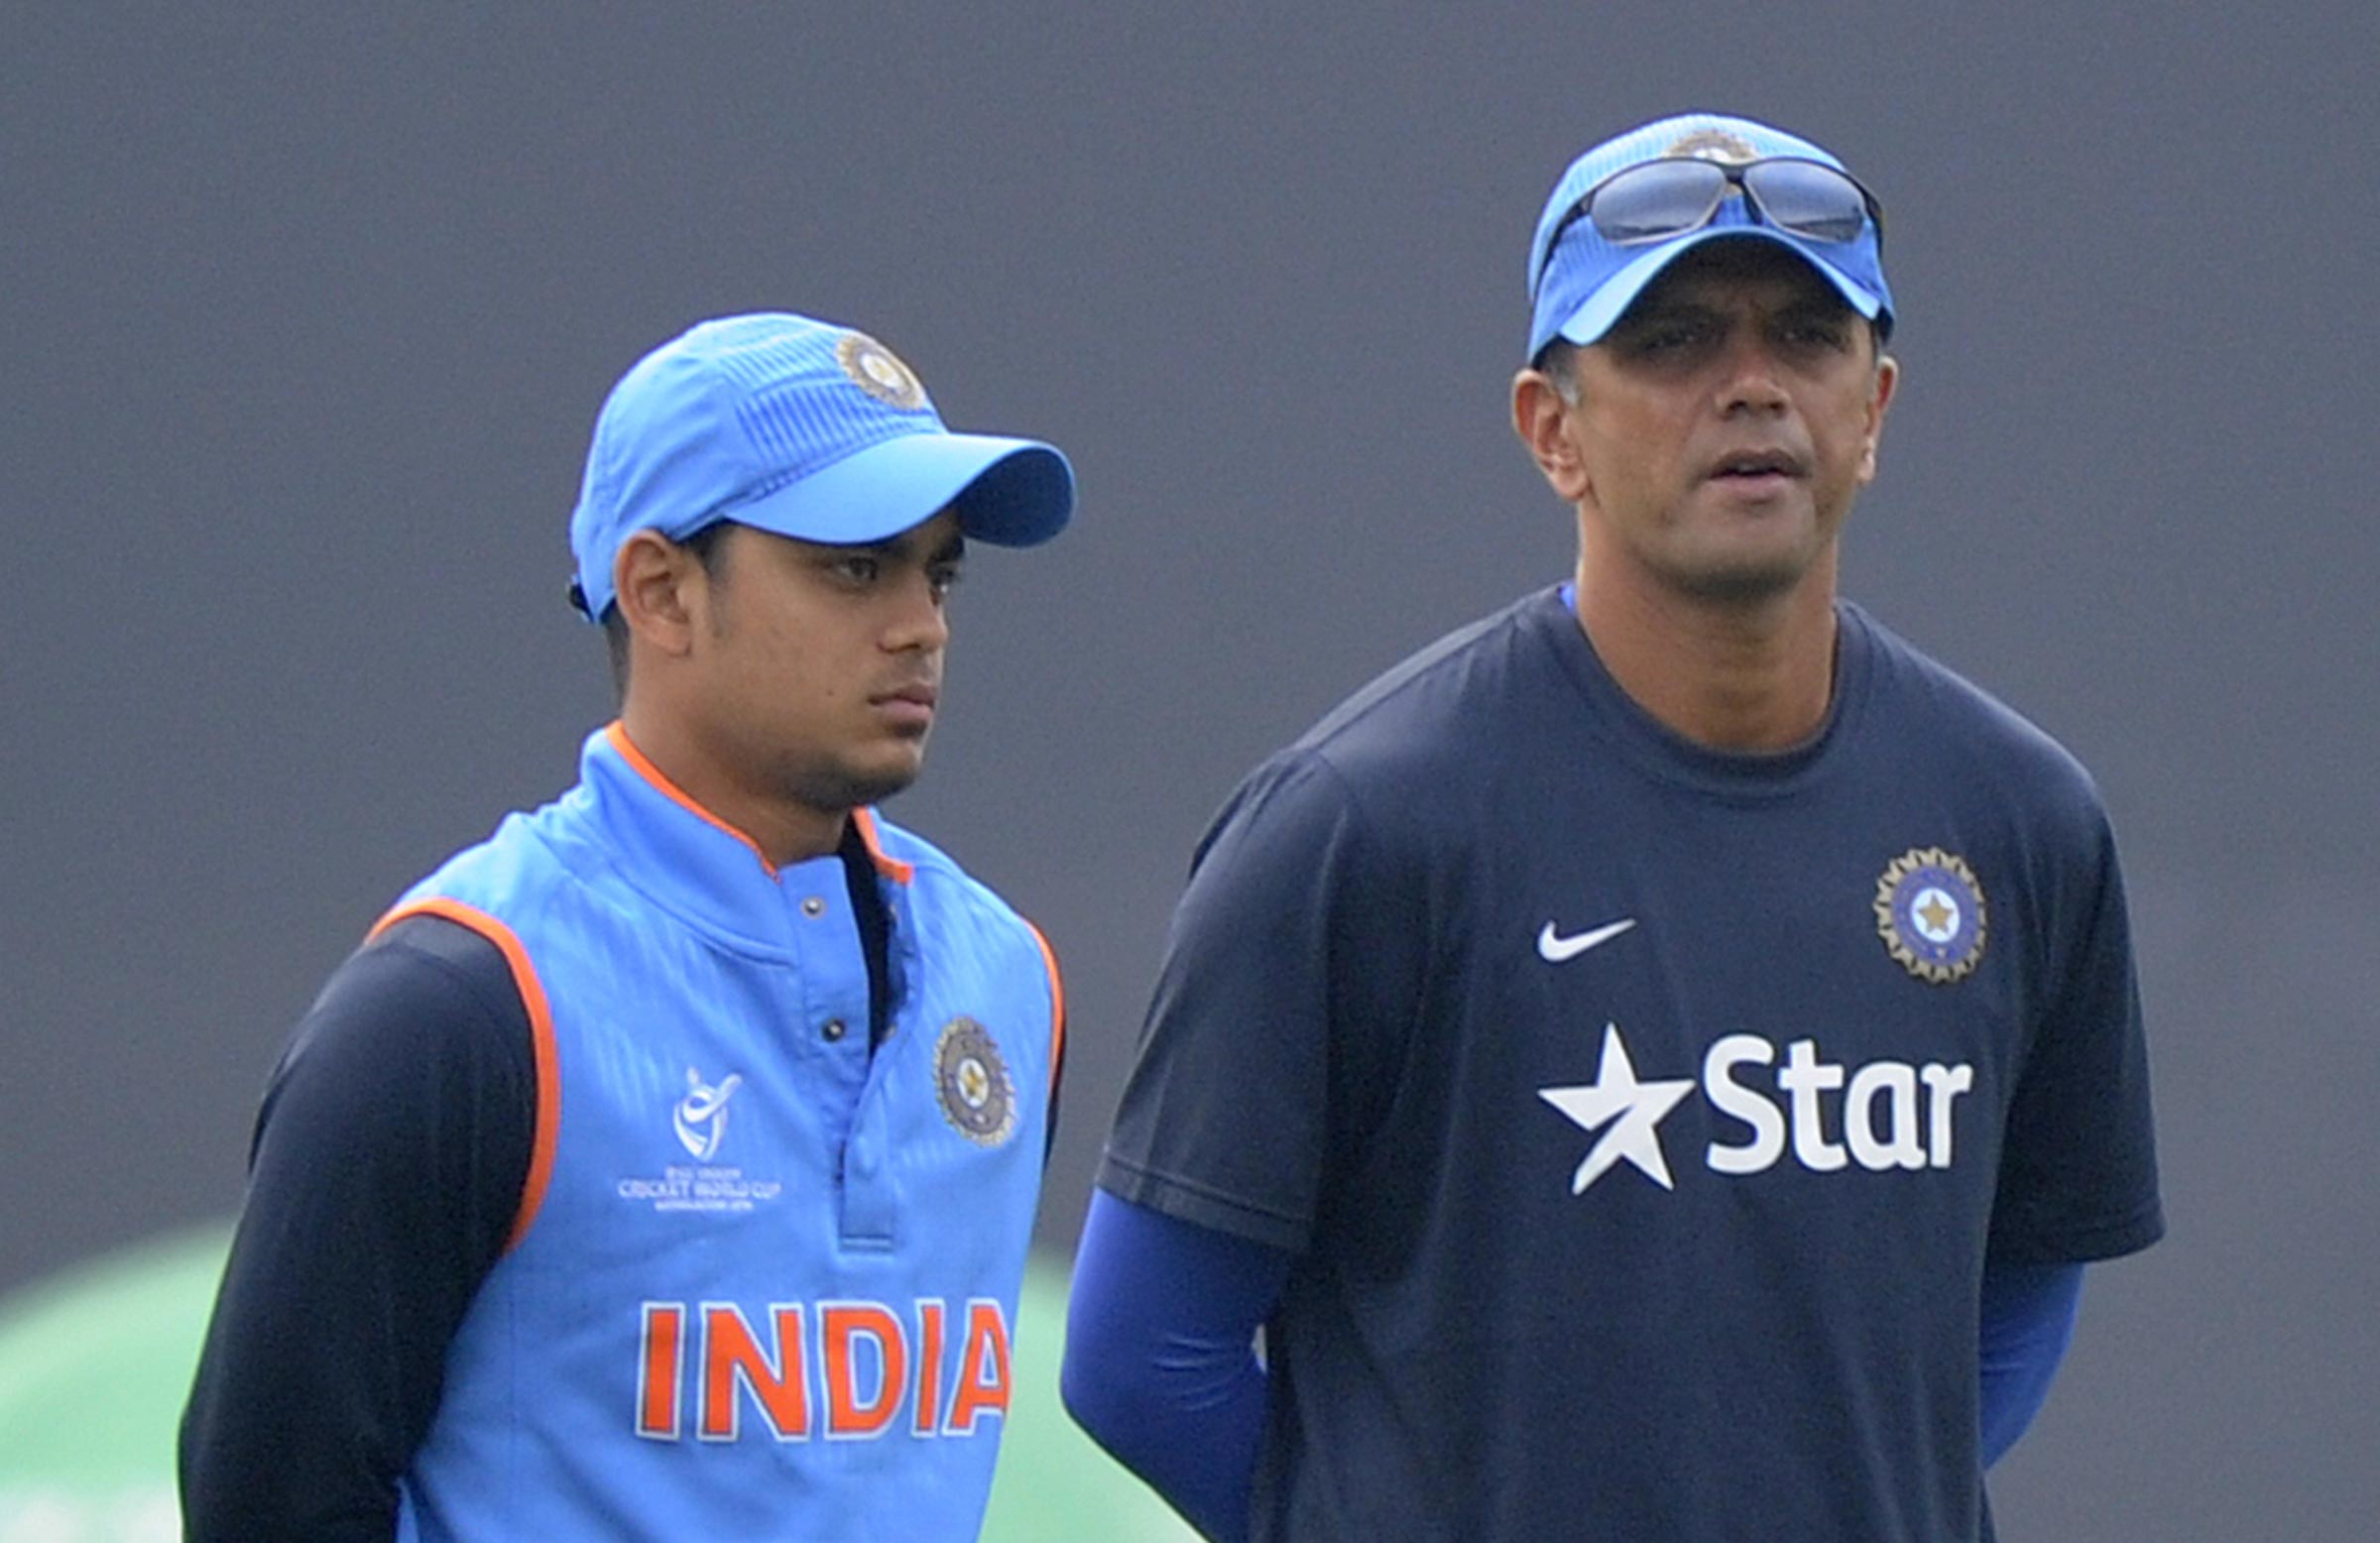 Dravid (R) to continue to mentor India